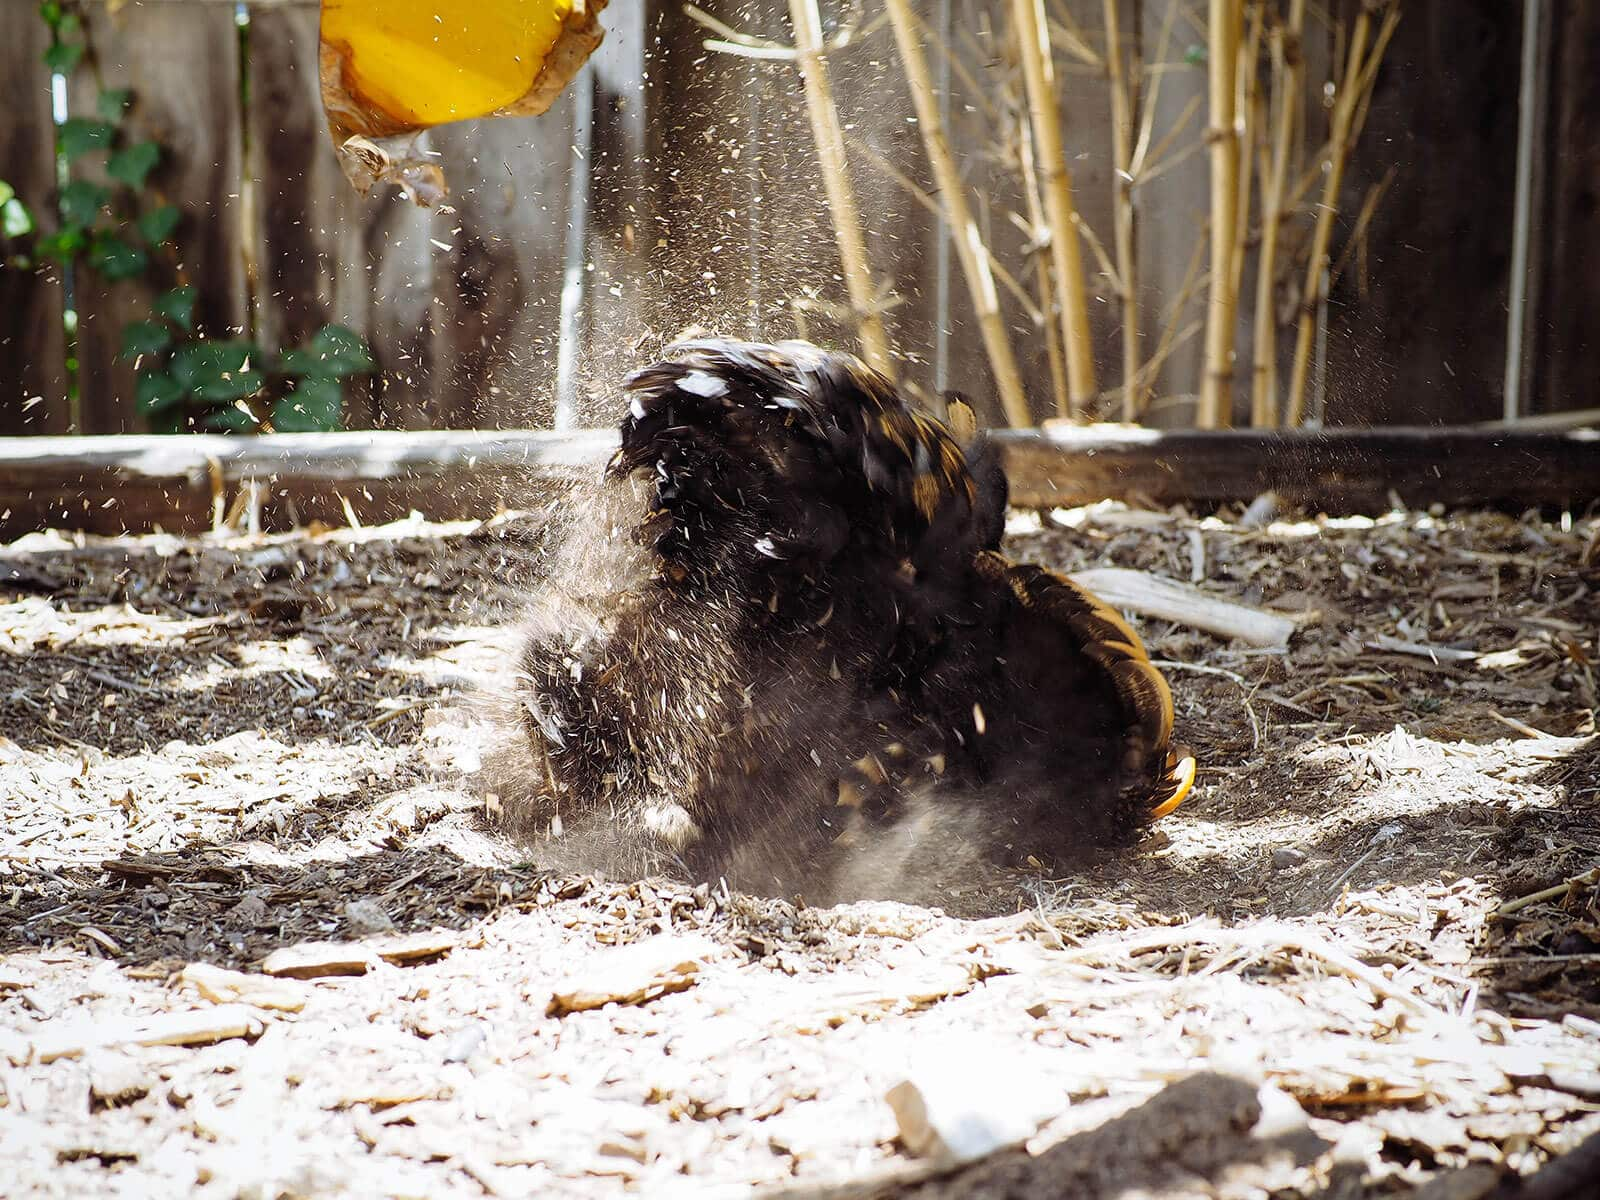 Cochin hen dust bathing in mulch